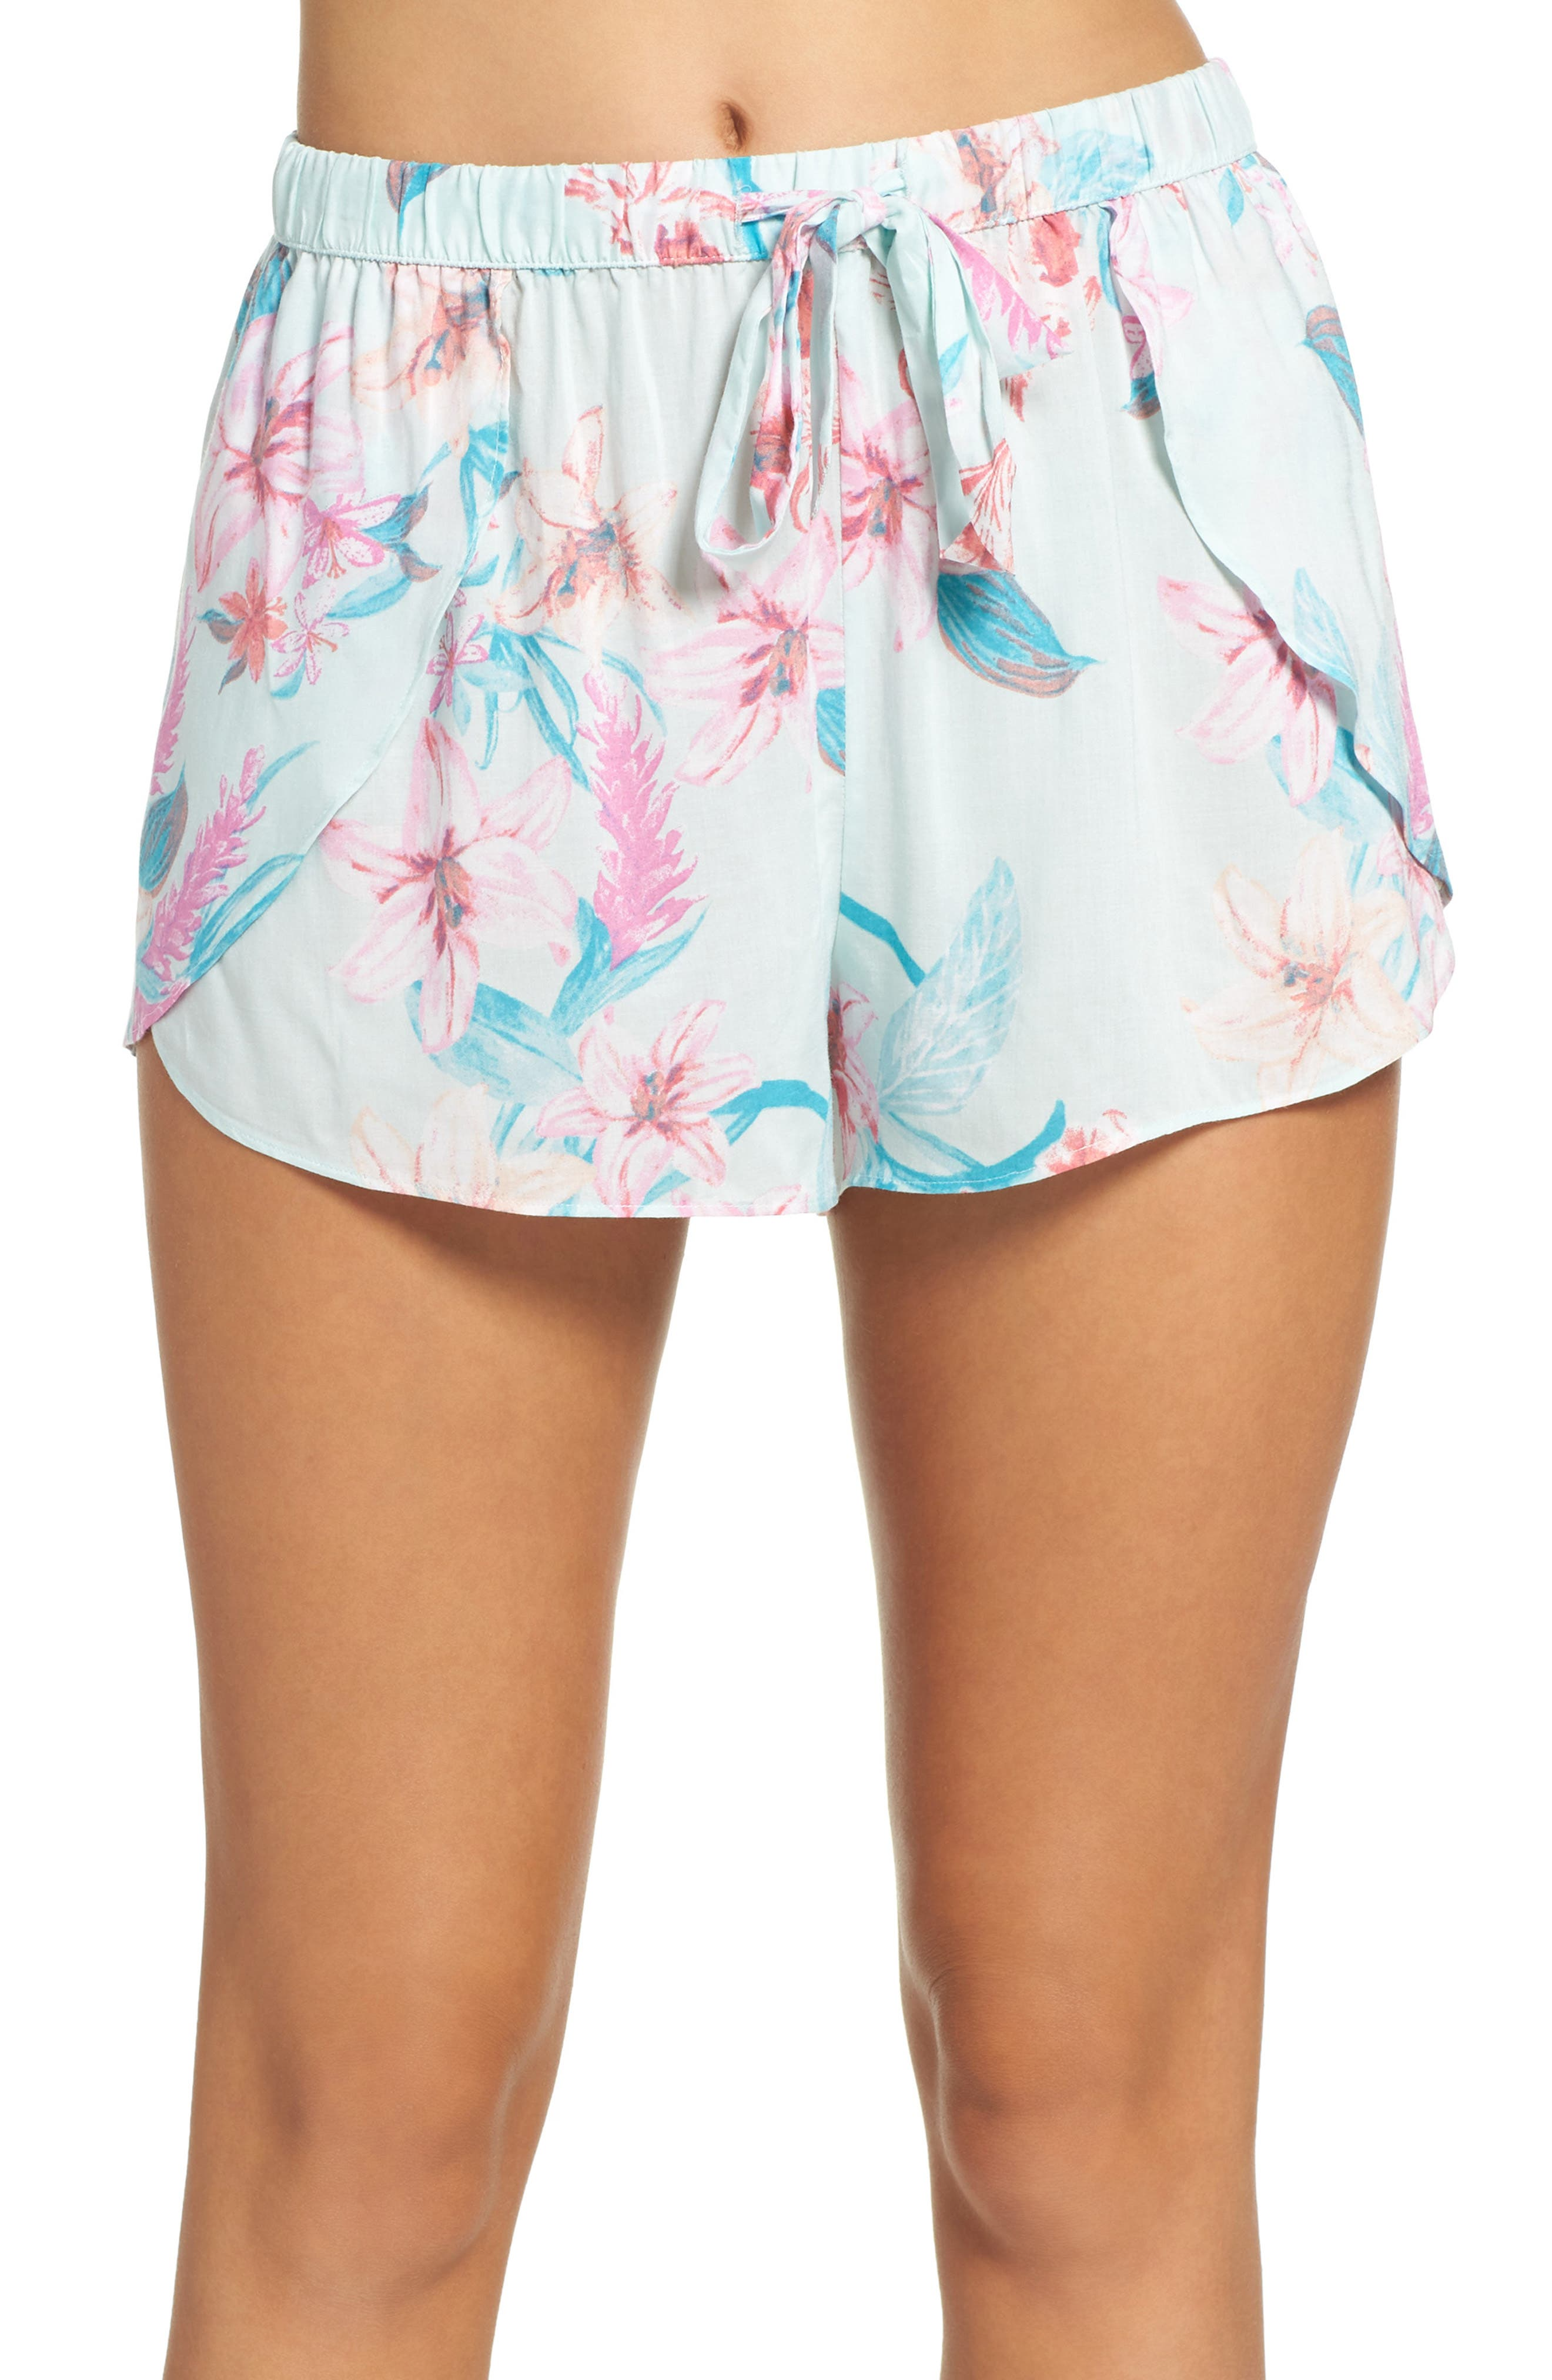 Nordstrom Lingerie Sweet Dreams Pajama Shorts